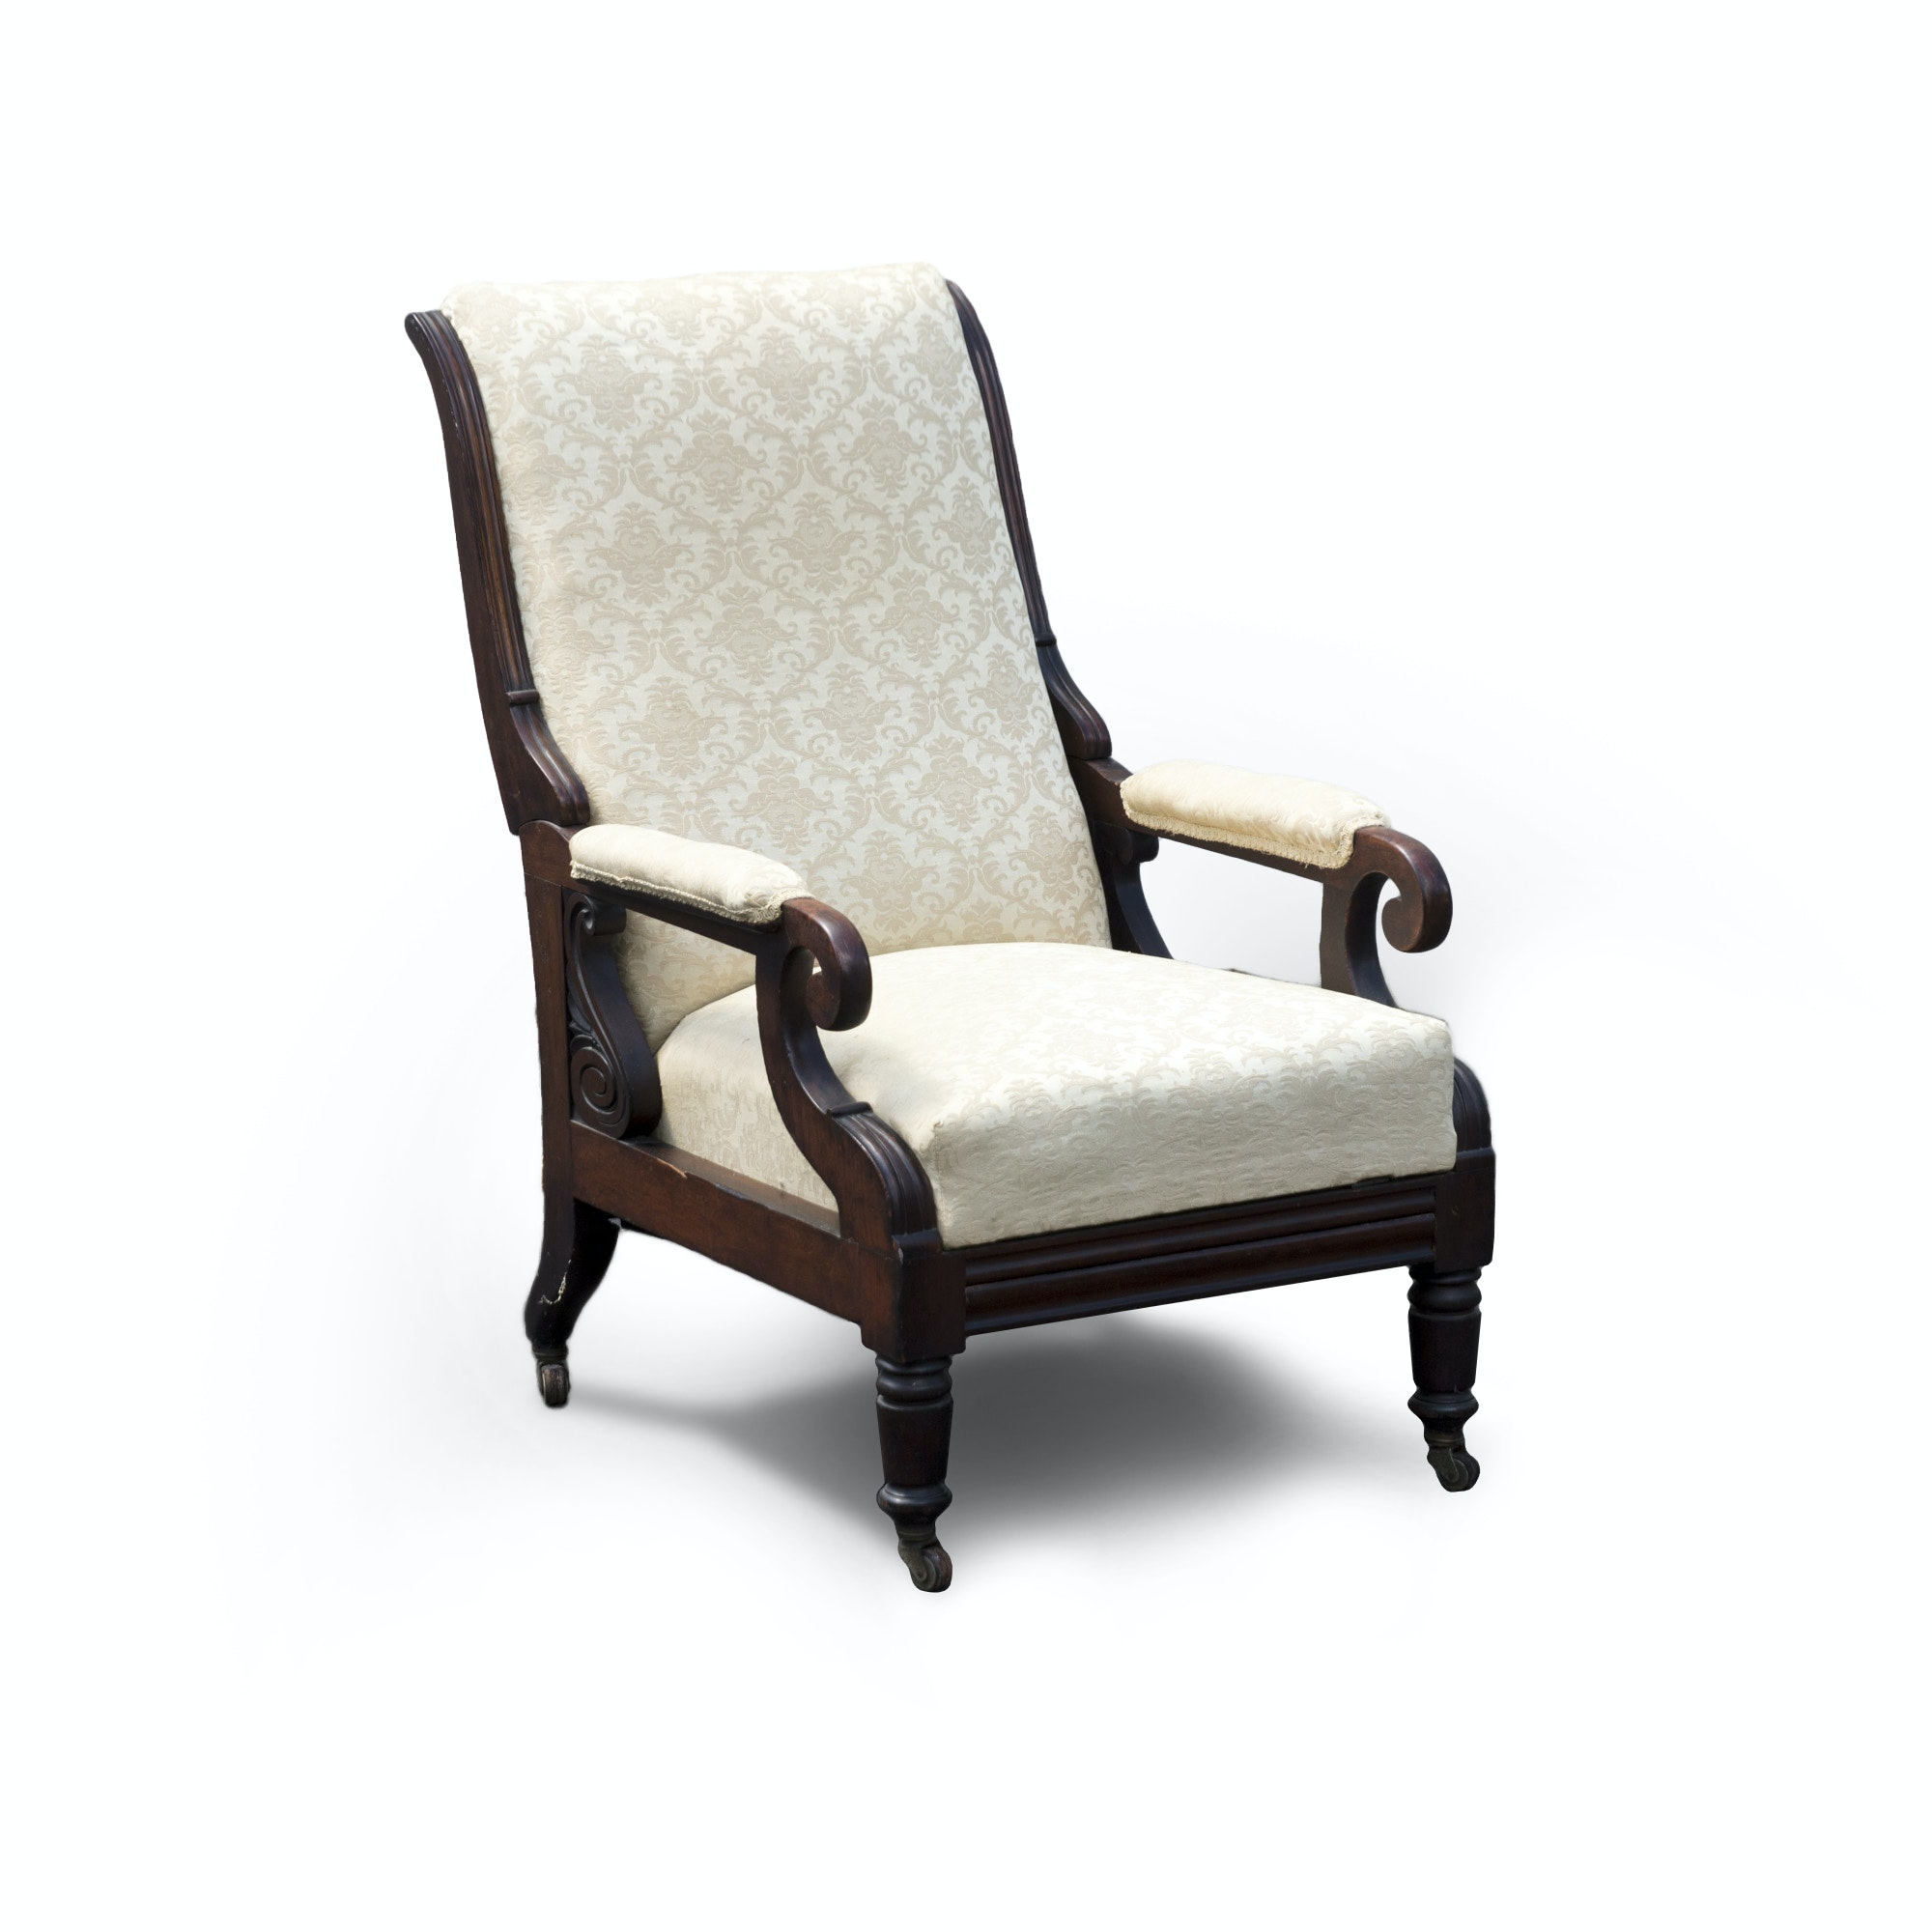 Victorian Style Armchair With Built-In Footrest